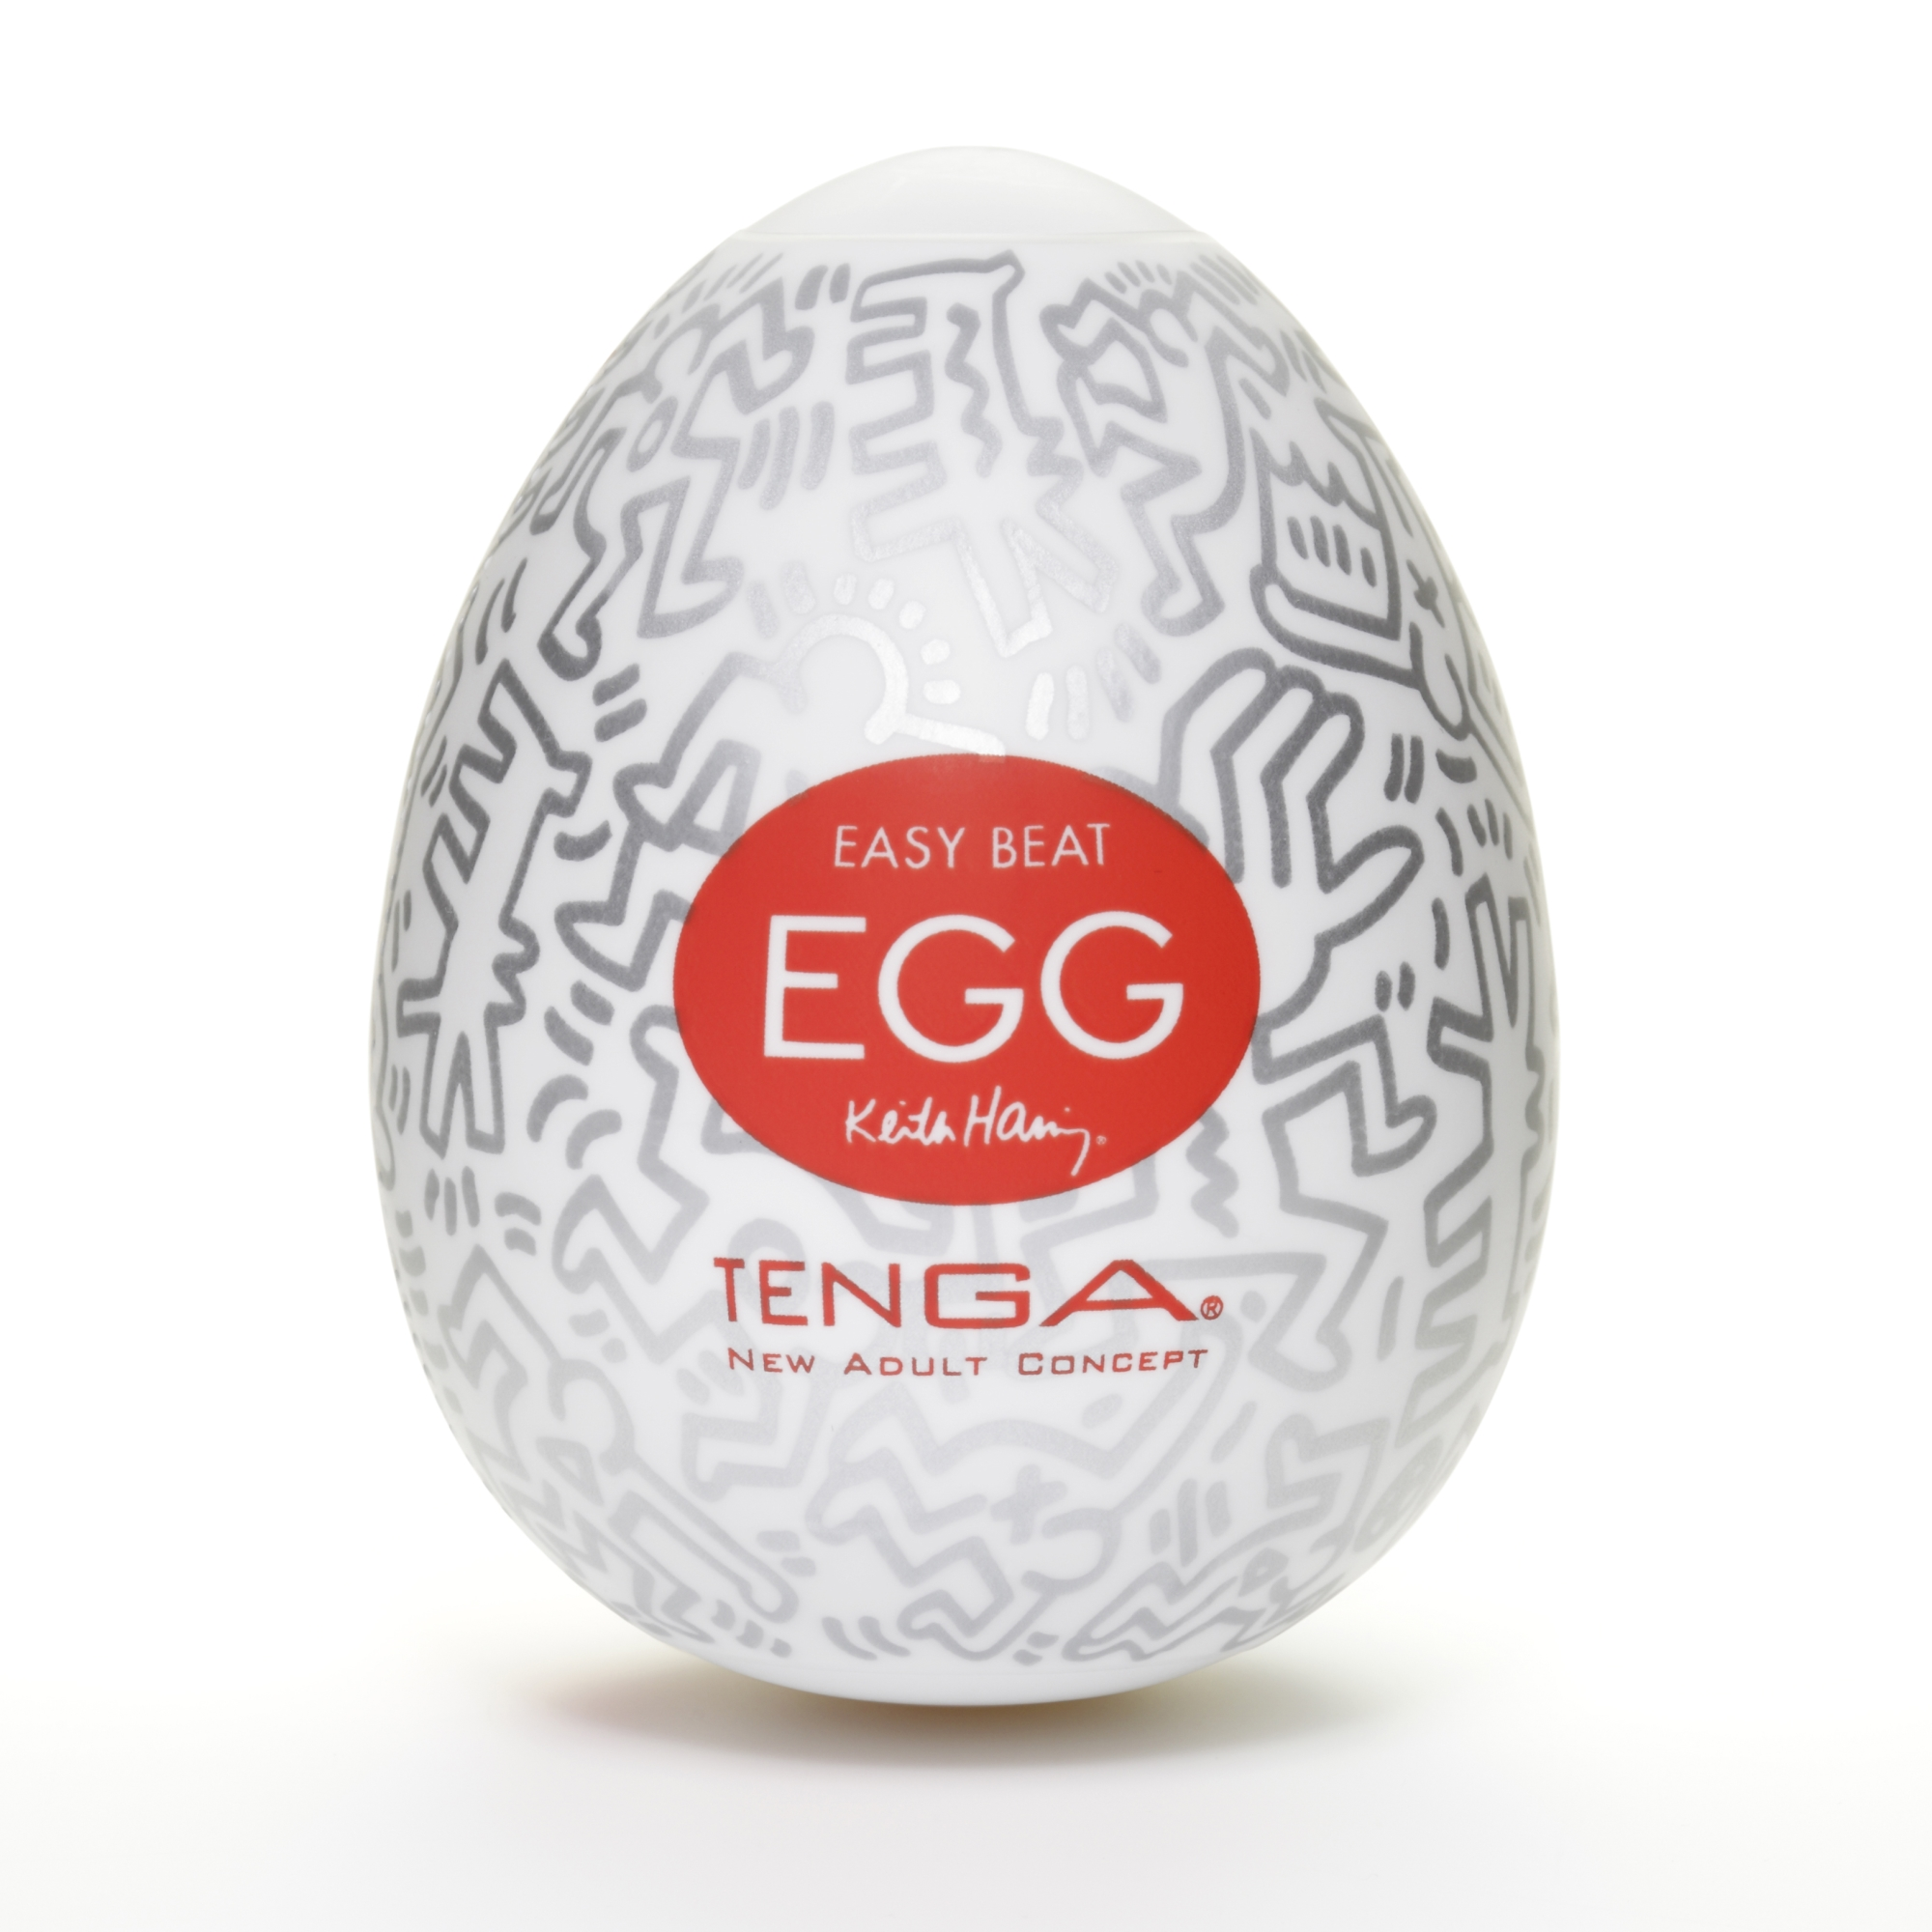 TENGA Keith Haring - Egg Party (1db)